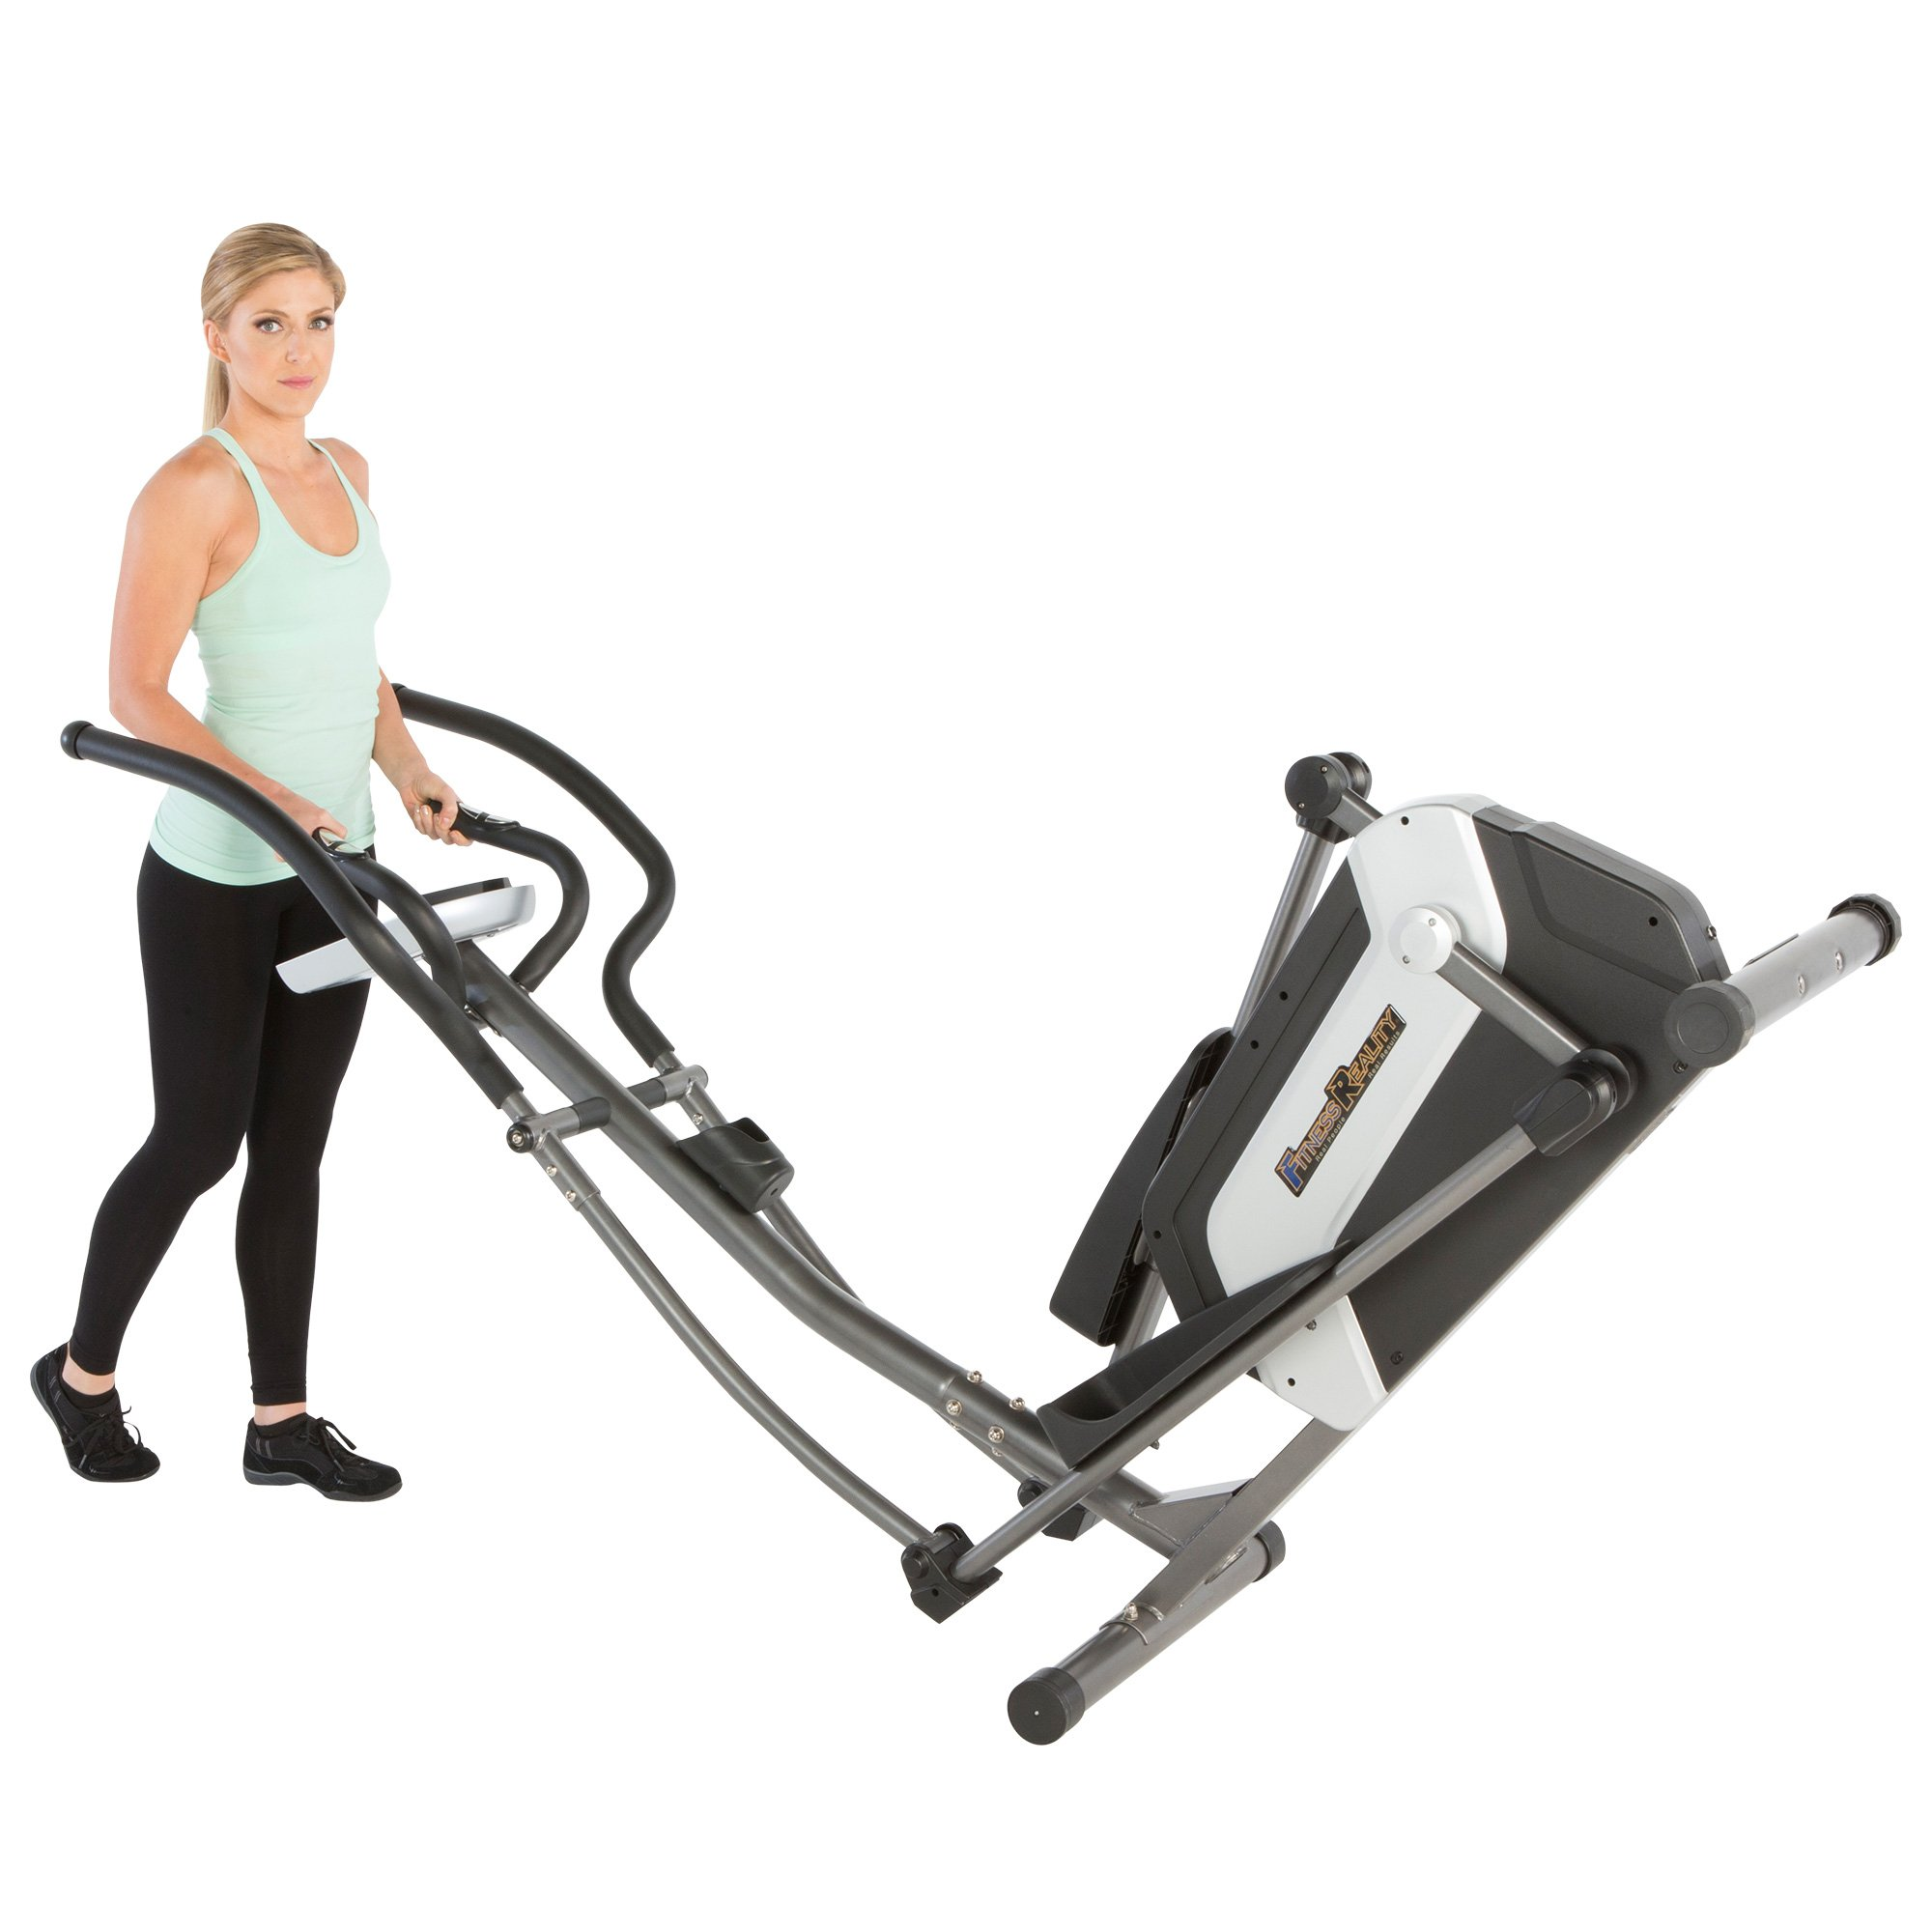 Fitness Reality E5500XL Magnetic Elliptical Trainer with Comfortable 18'' Stride by Fitness Reality (Image #16)